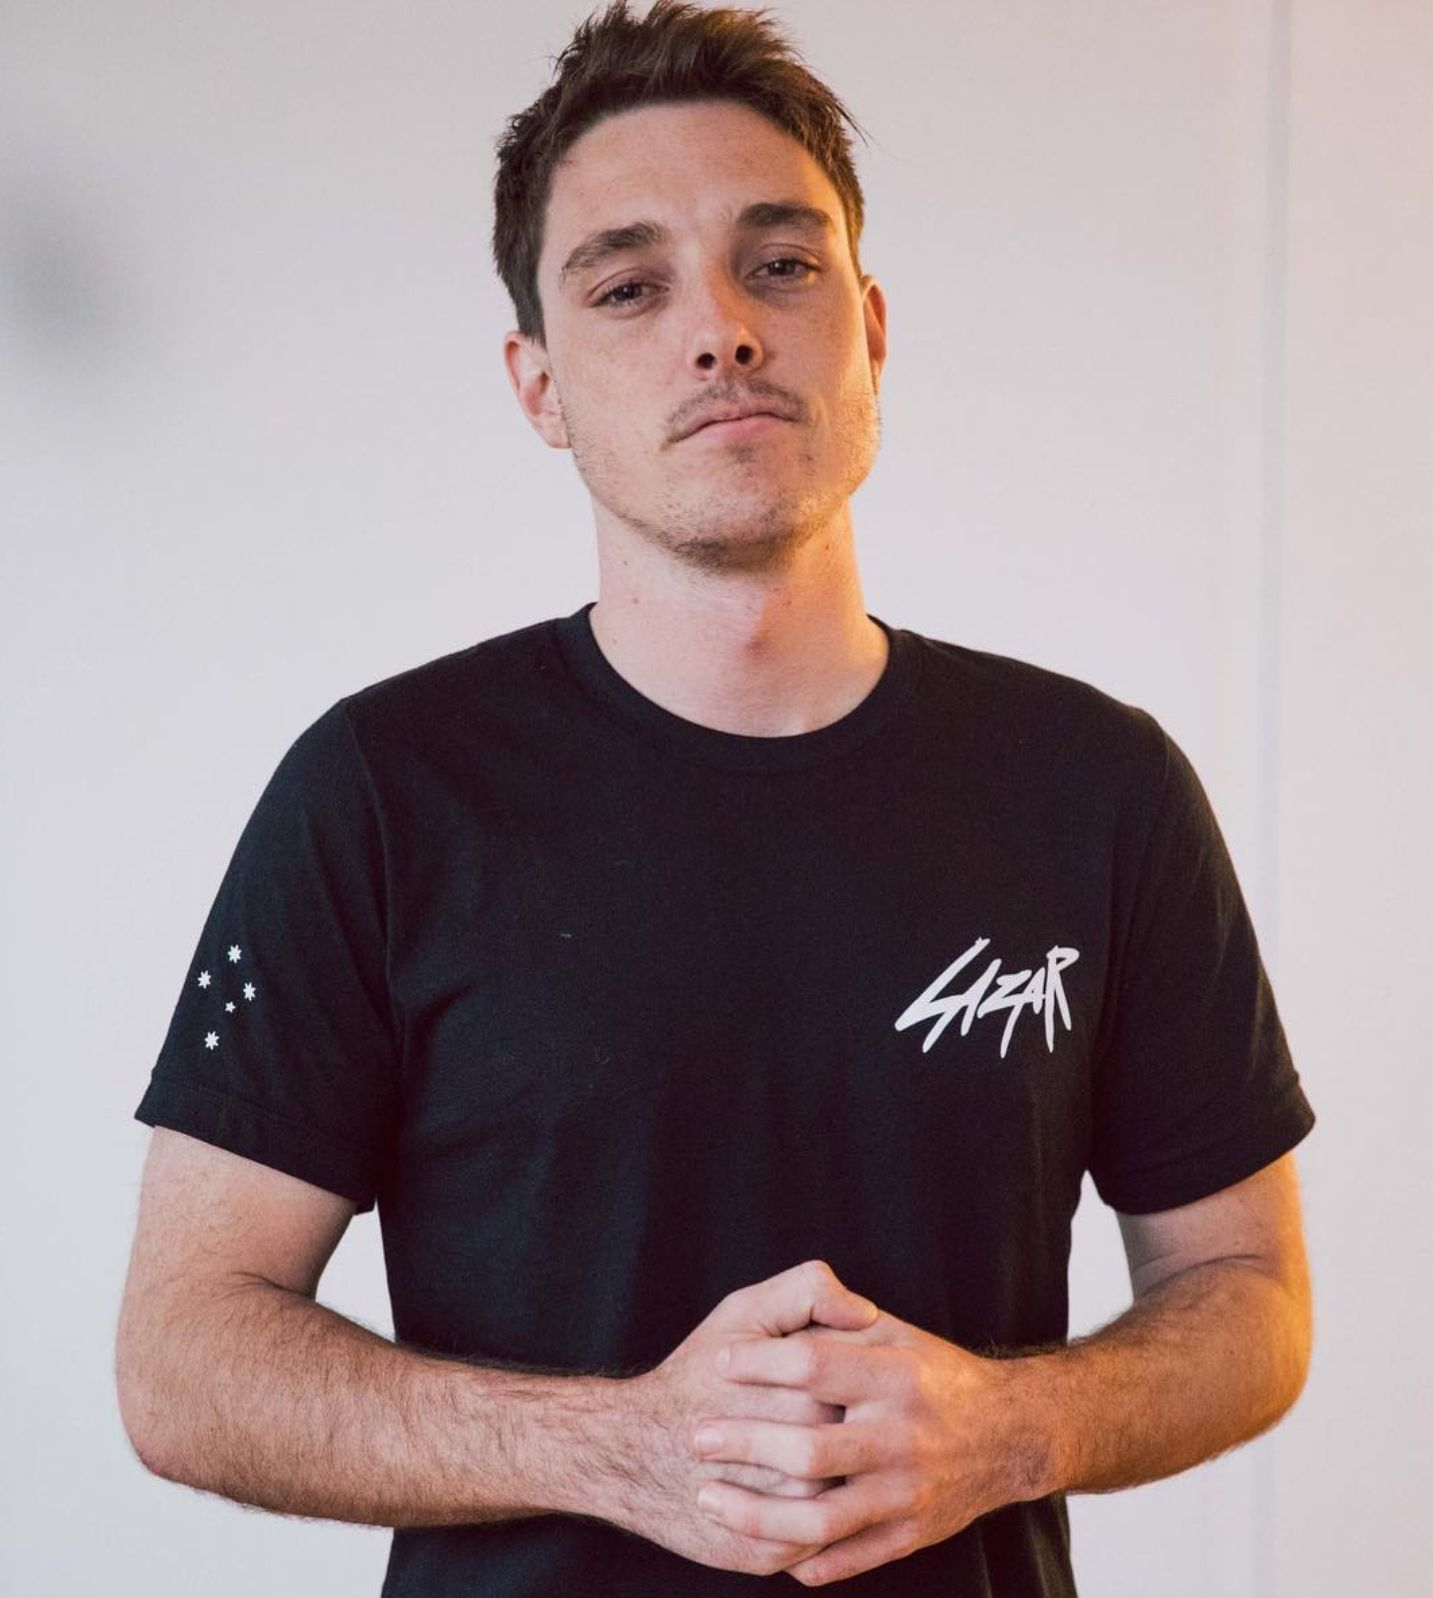 The 25-year old son of father (?) and mother(?) LazarBeam in 2020 photo. LazarBeam earned a  million dollar salary - leaving the net worth at  million in 2020